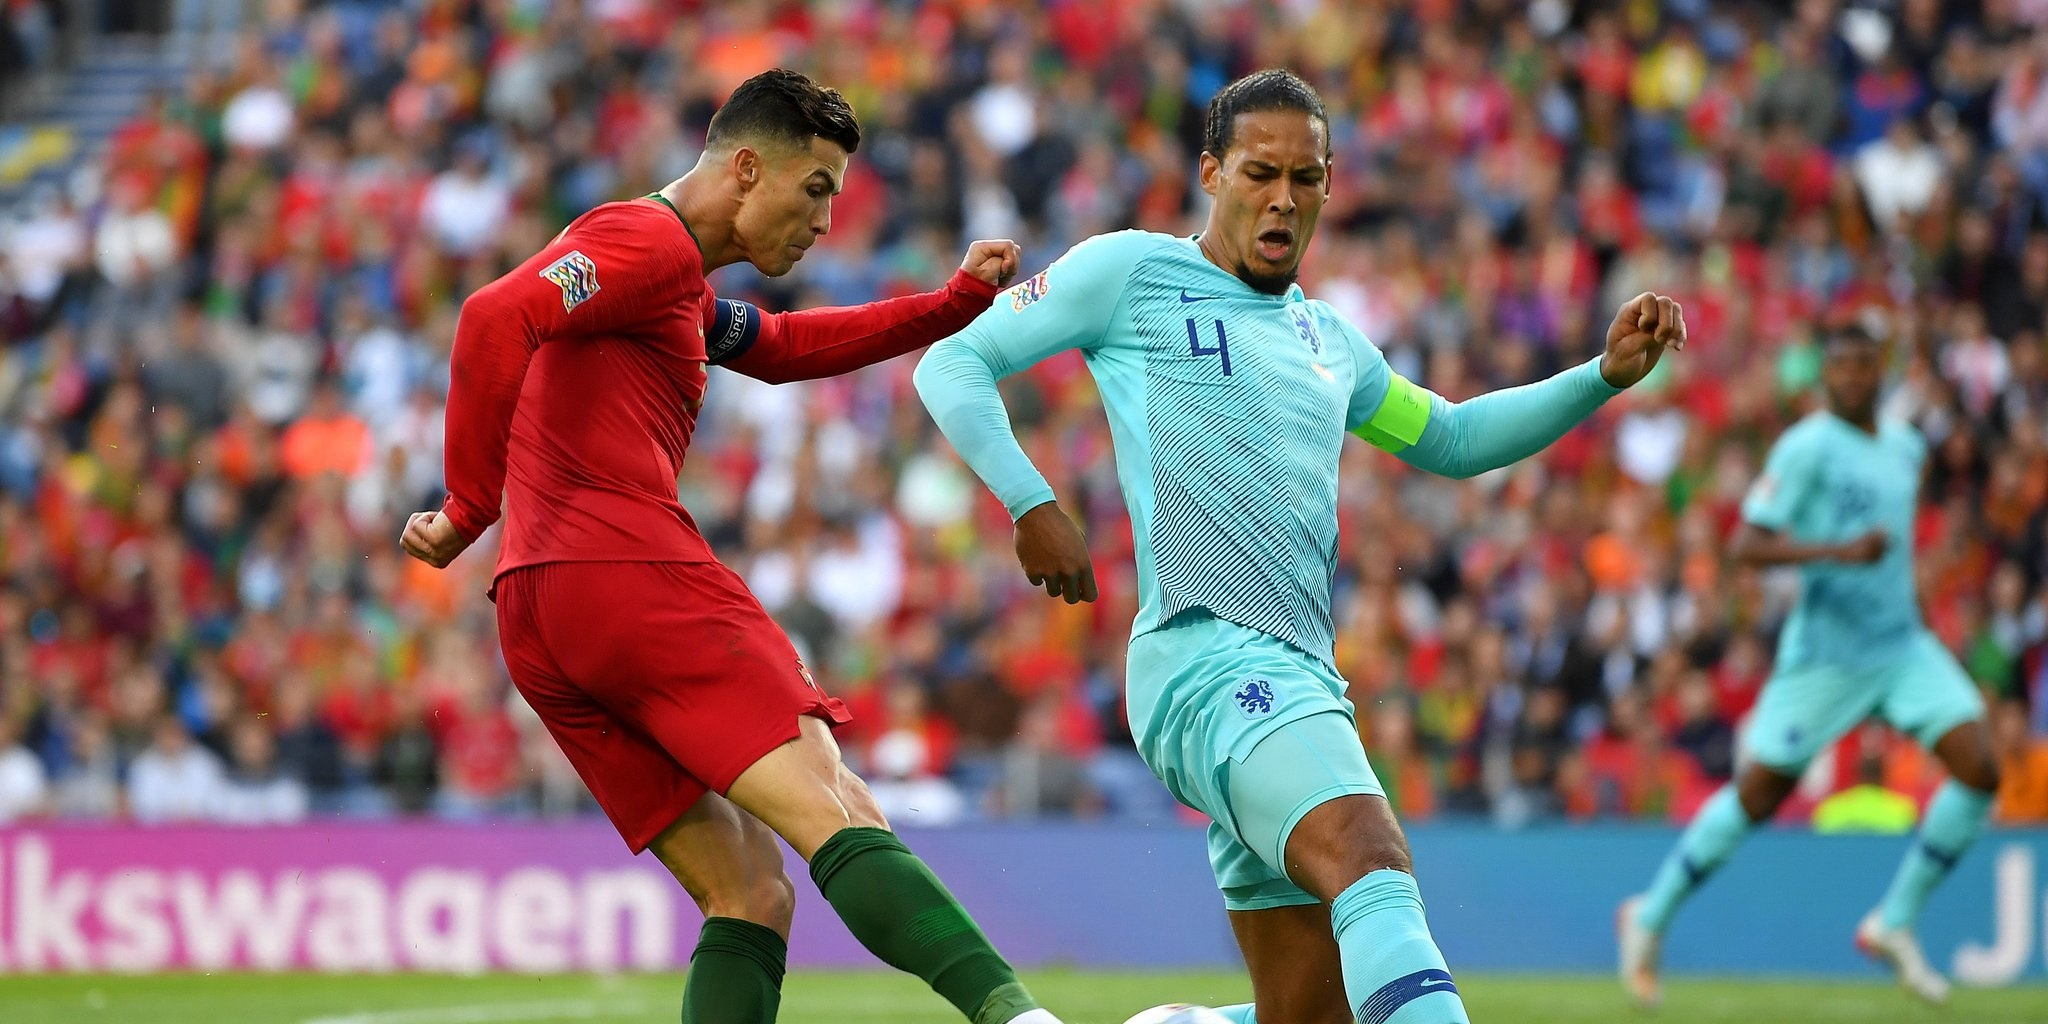 Souness suggests Ronaldo would struggle against Van Dijk after ripping into United signing